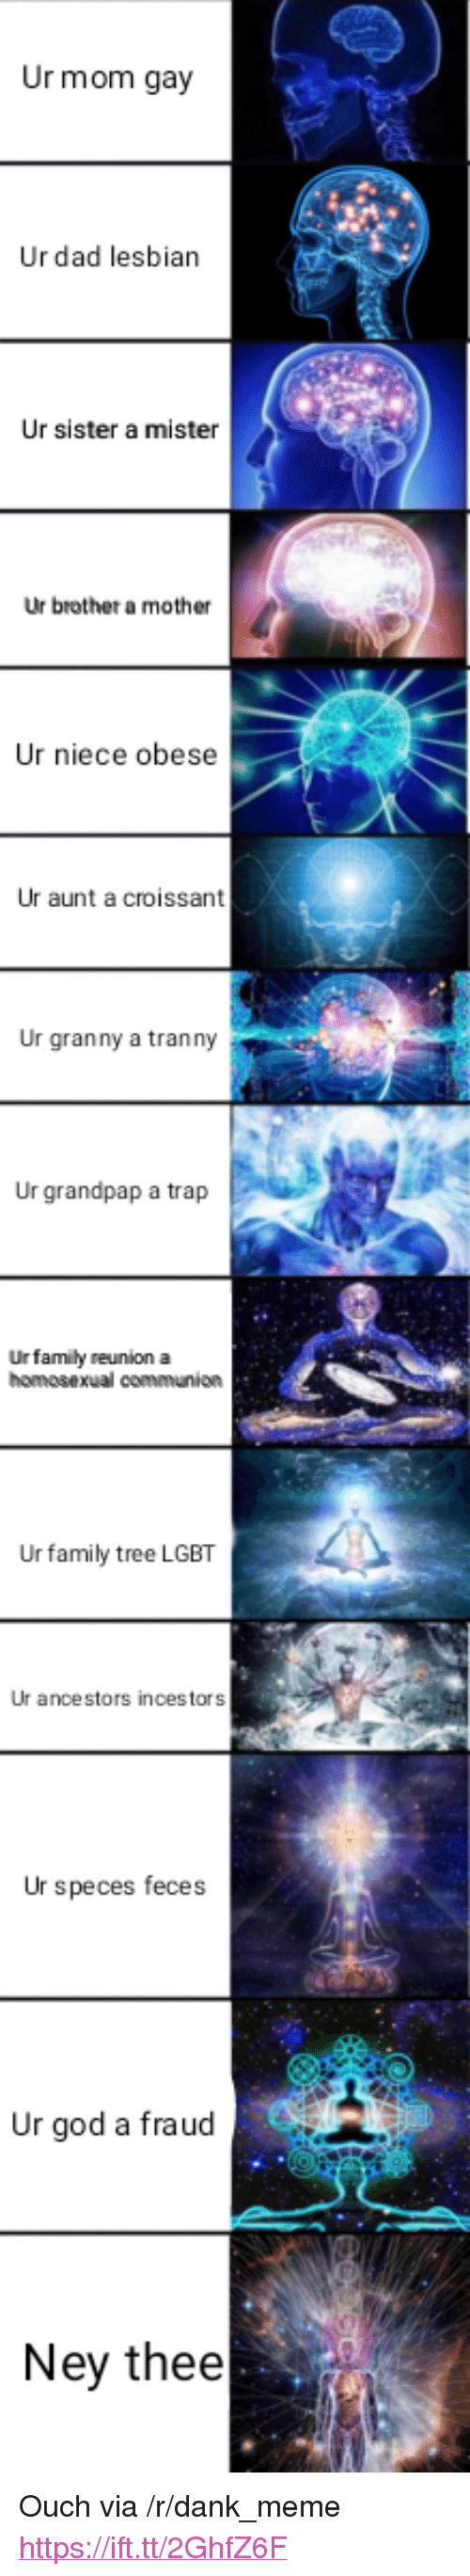 "Dad, Dank, and Family: Ur mom gay  Ur dad lesbian  Ur sister a mister  Ur brother am  other  Ur niece obese  Ur aunt a croissant  Ur granny a tranny  Ur grandpap a trap  Urfamily reunion a  Ur family tree LGBT  Ur ancestors incestors  Ur speces feces  Ur god a fraud  Ney thee <p>Ouch via /r/dank_meme <a href=""https://ift.tt/2GhfZ6F"">https://ift.tt/2GhfZ6F</a></p>"